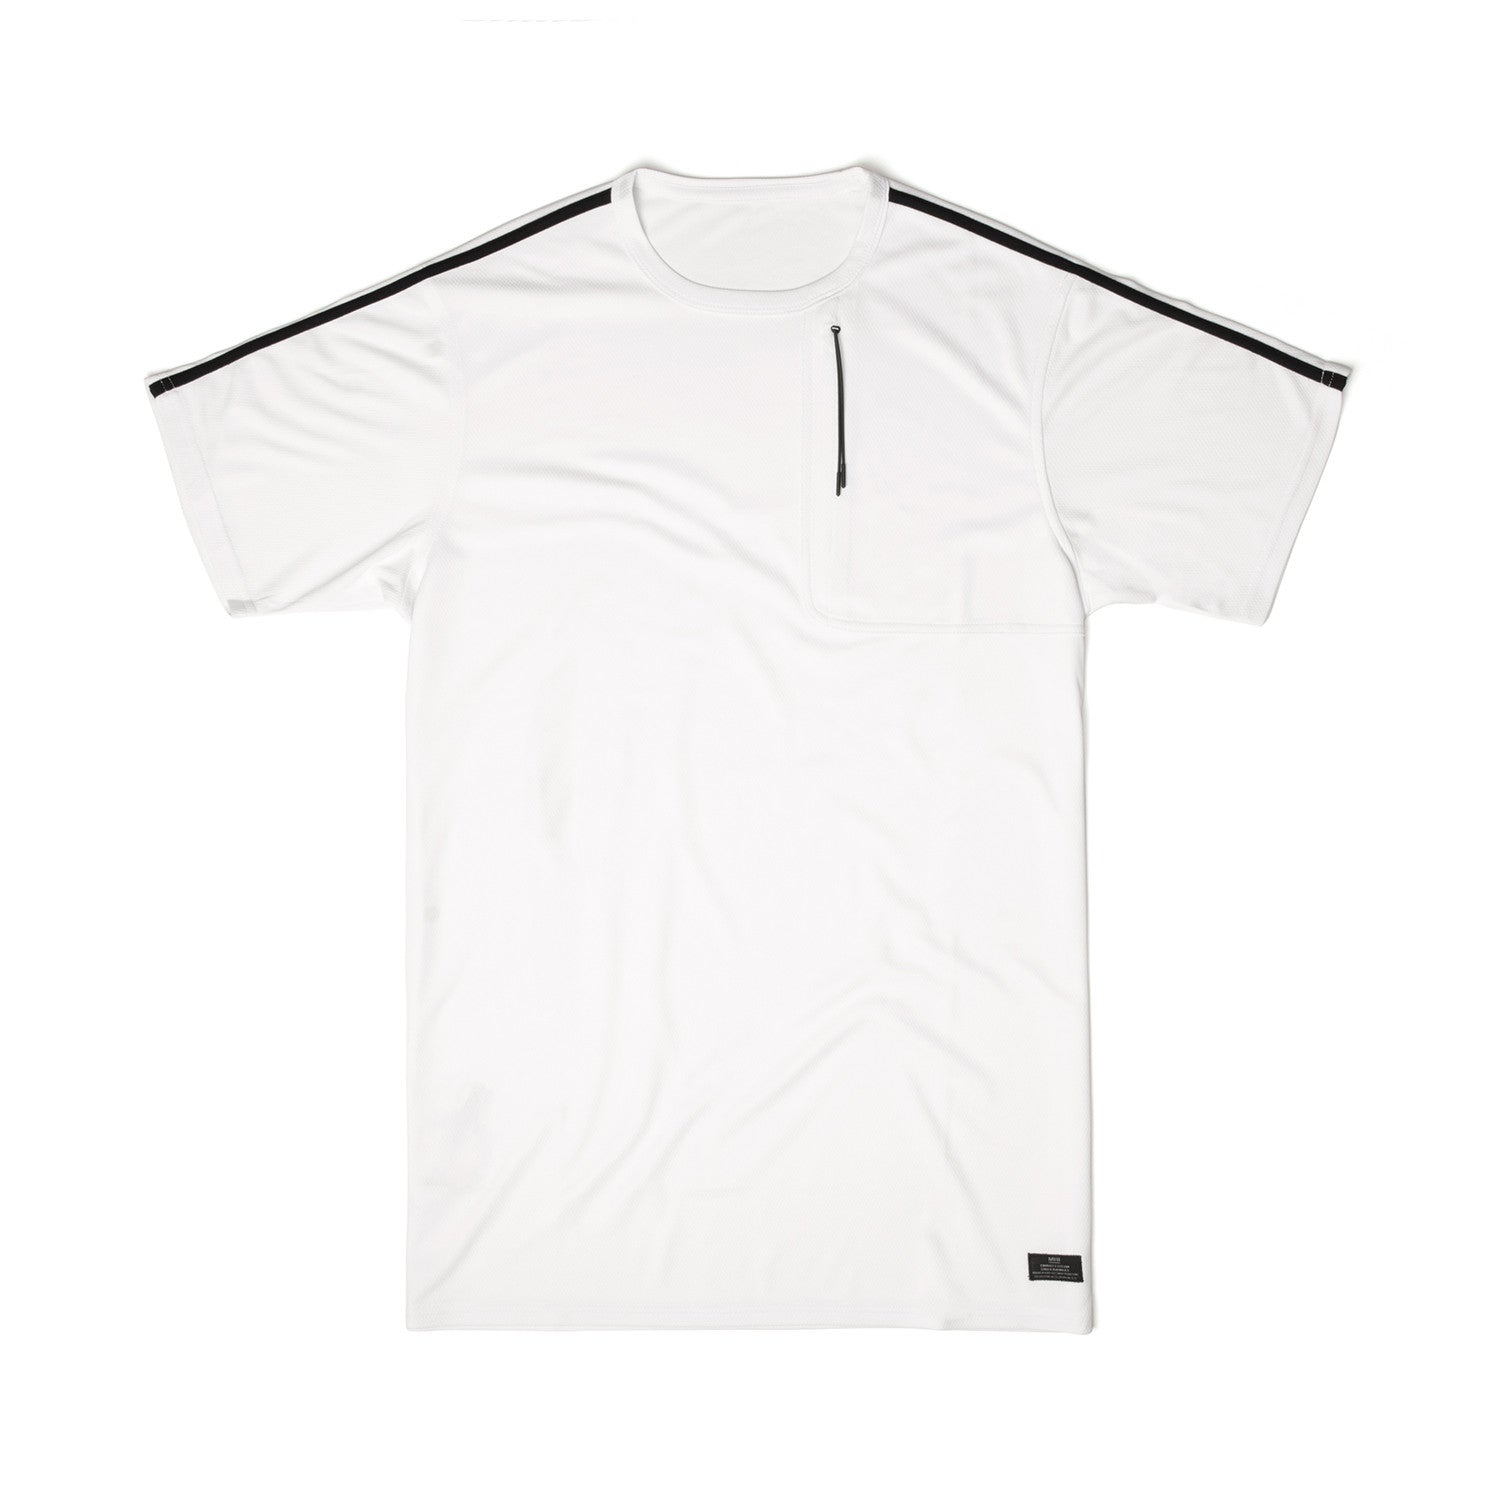 MHI Coolmesh Mid Slouch T-Shirt White - Concrete